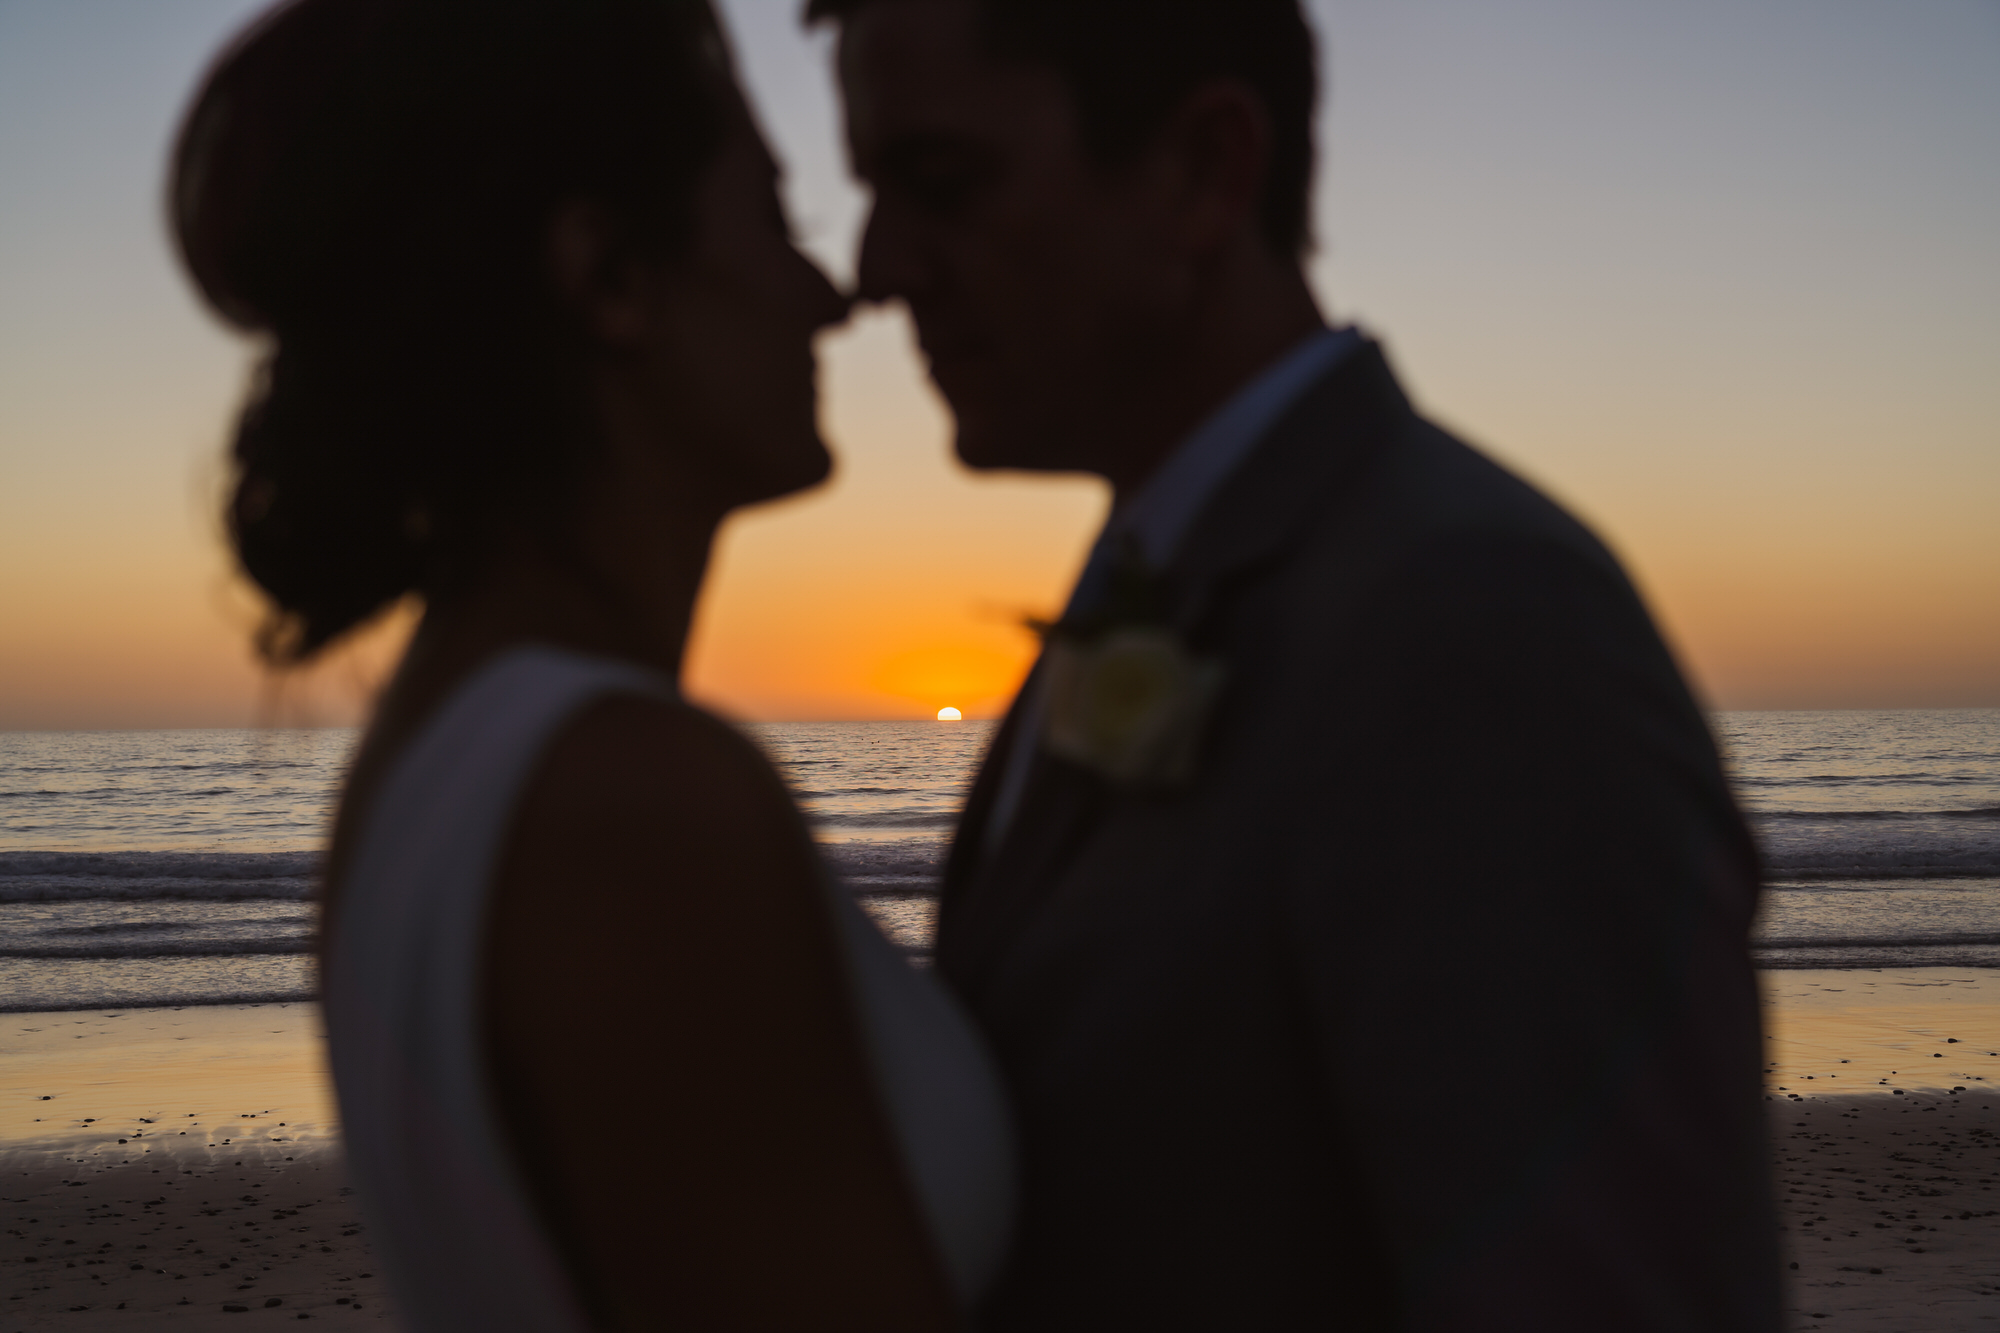 carlsbad_wedding_032